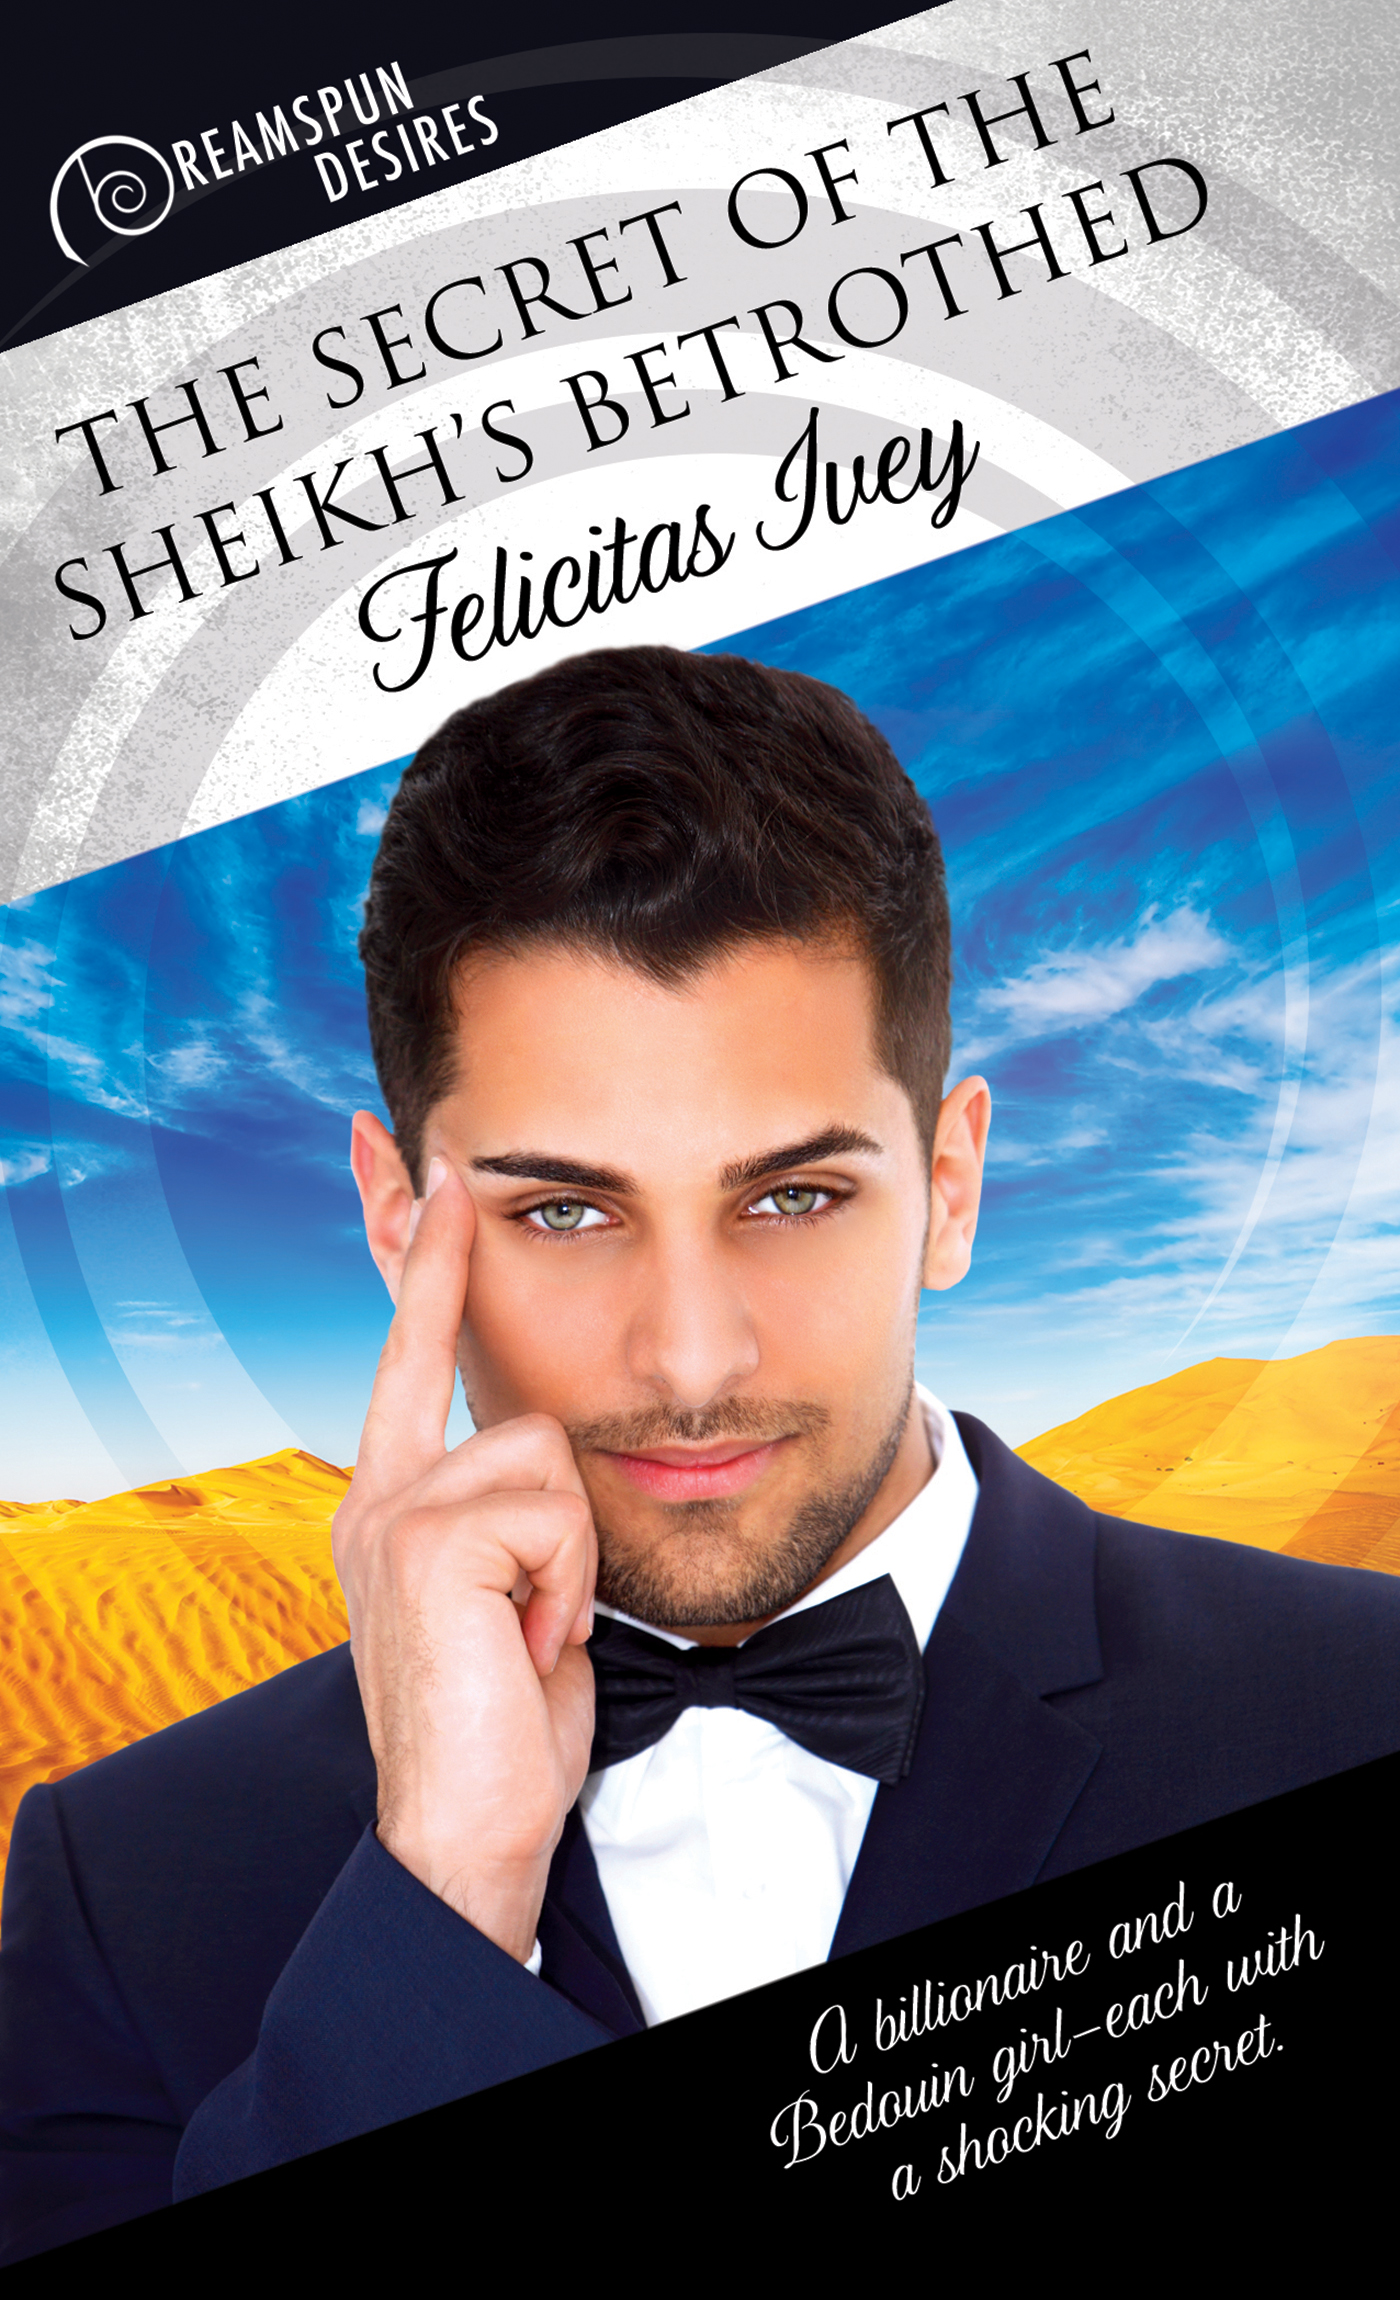 The Secret of the Sheikh's Betrothed